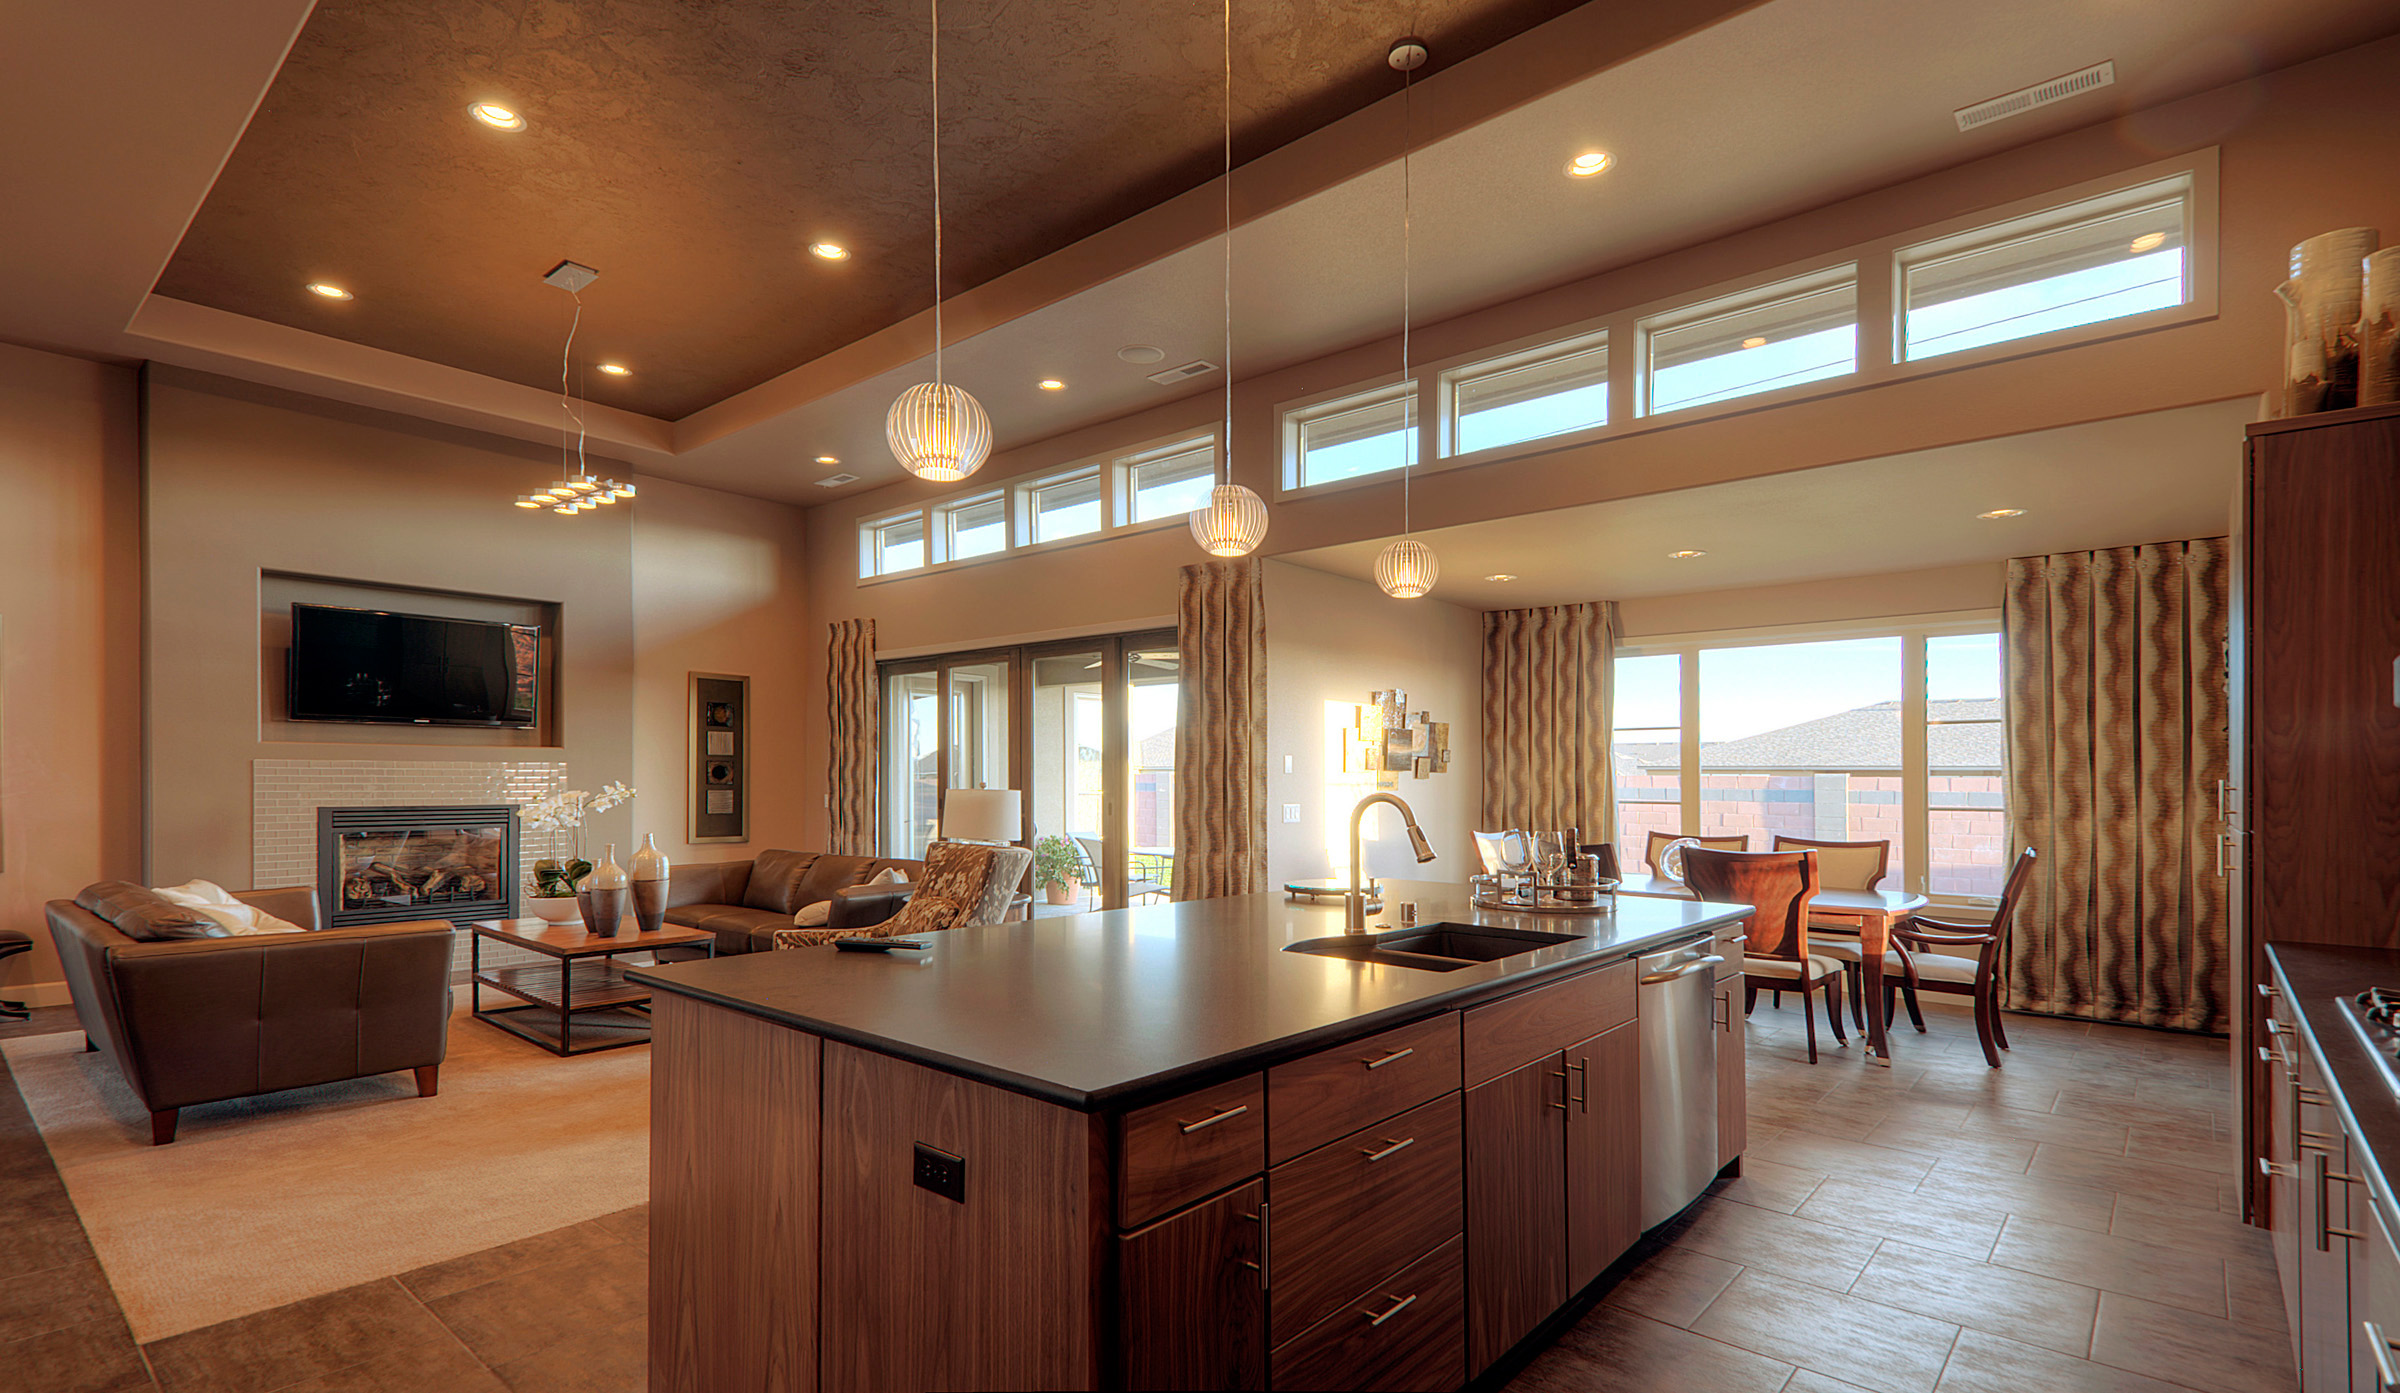 Open floor plans vs closed floor plans - Open floor plan kitchen living room dining room ...